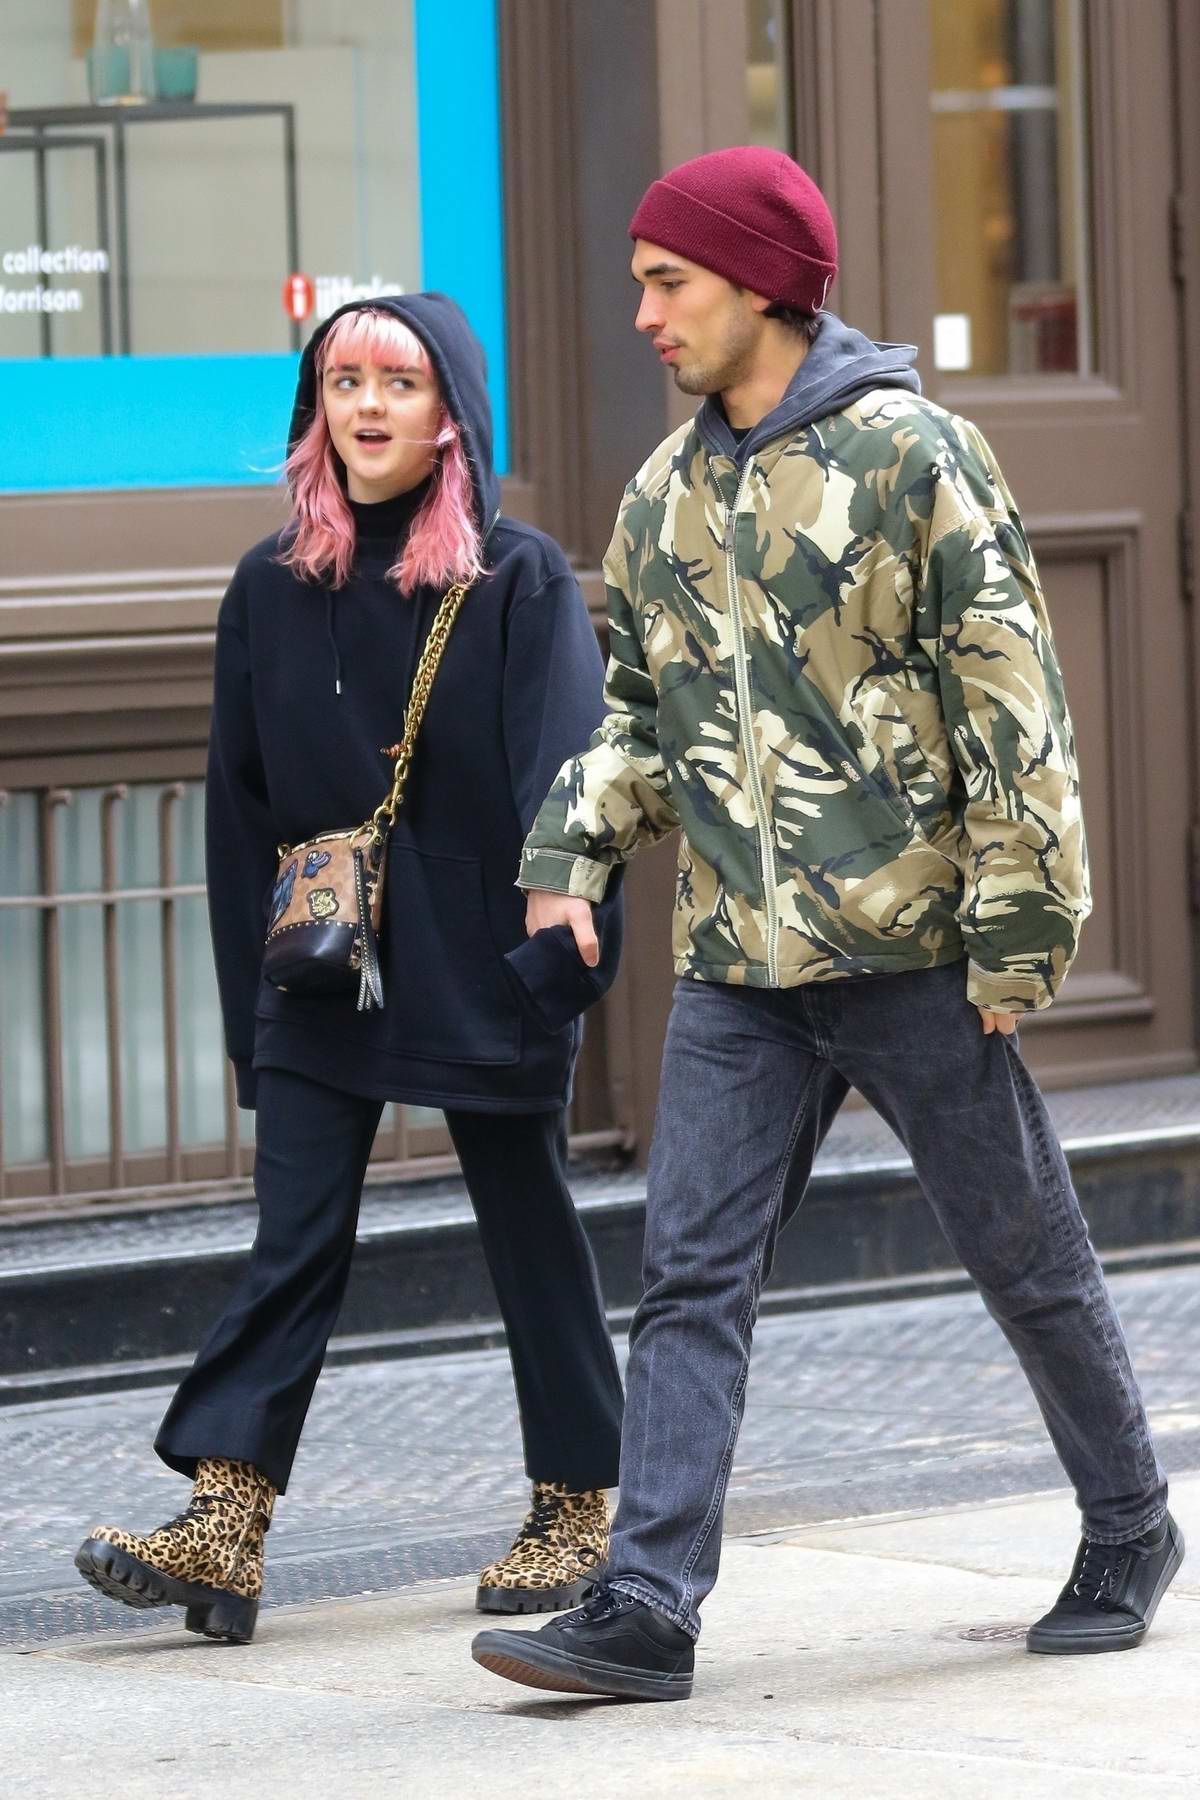 Maisie Williams steps out for some shopping with new boyfriend Reuben Selby in New York City